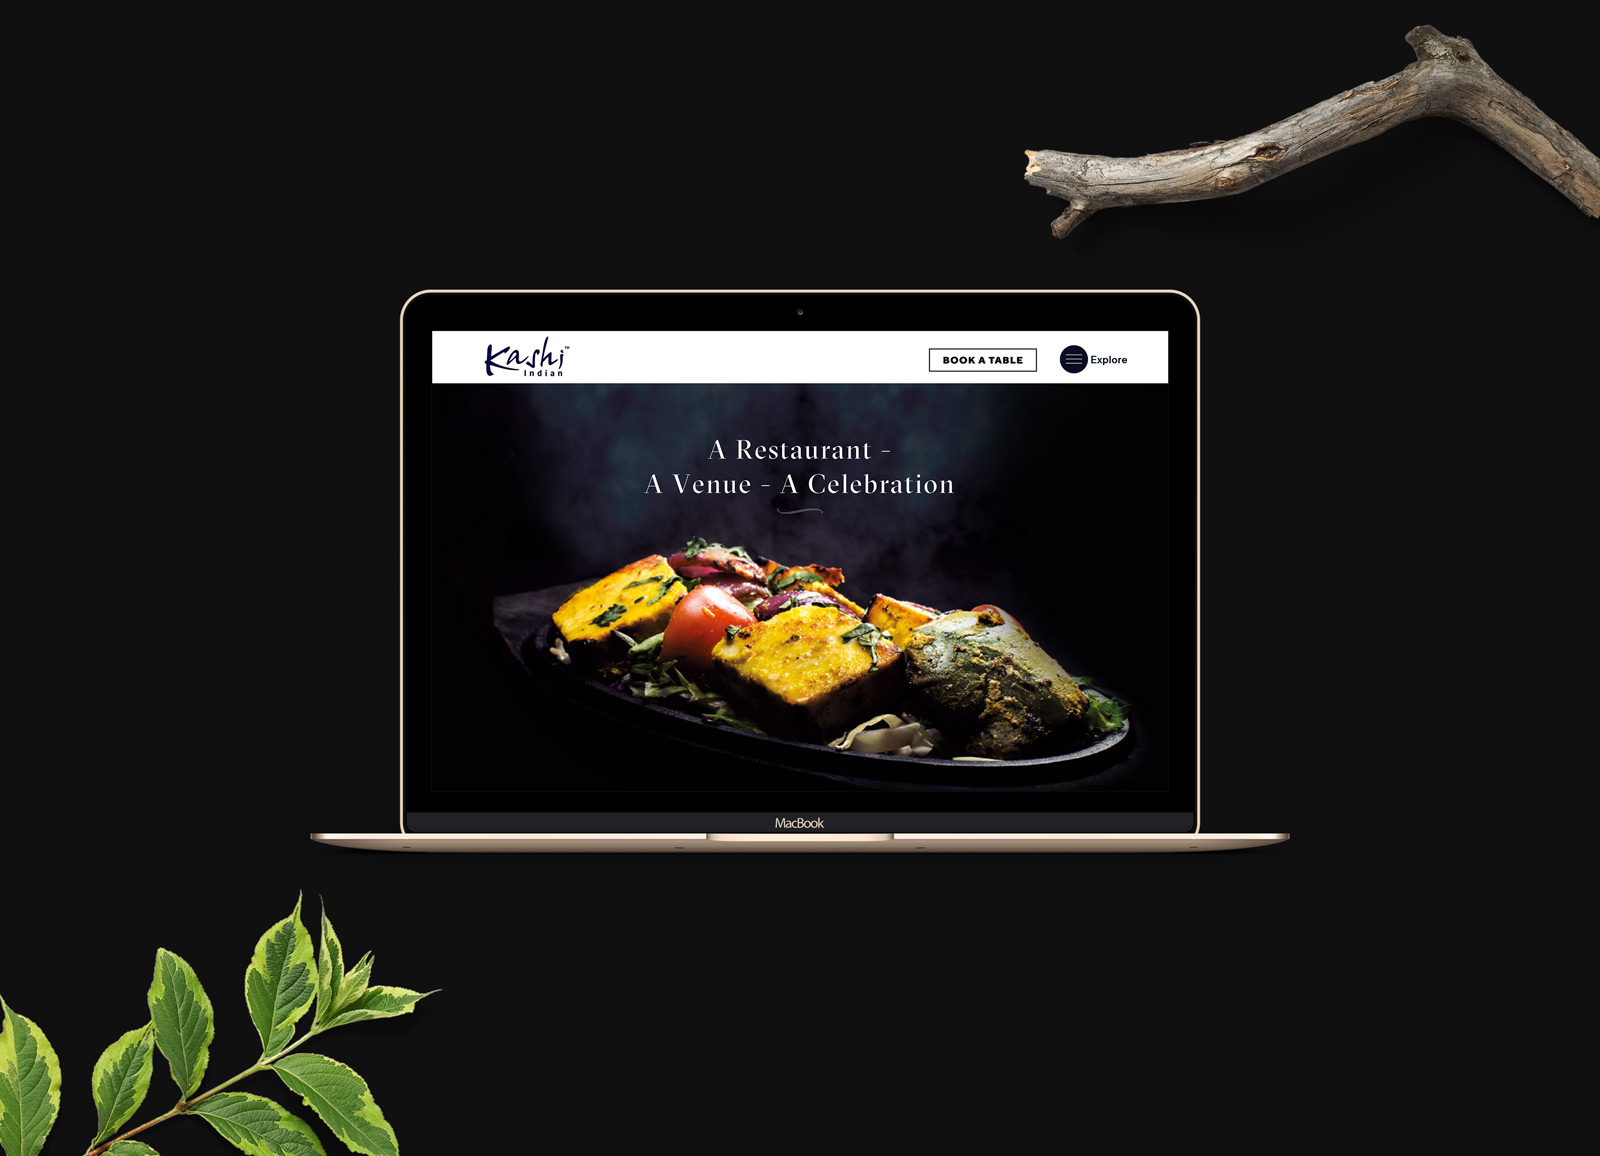 kashi indian restaurant Website design